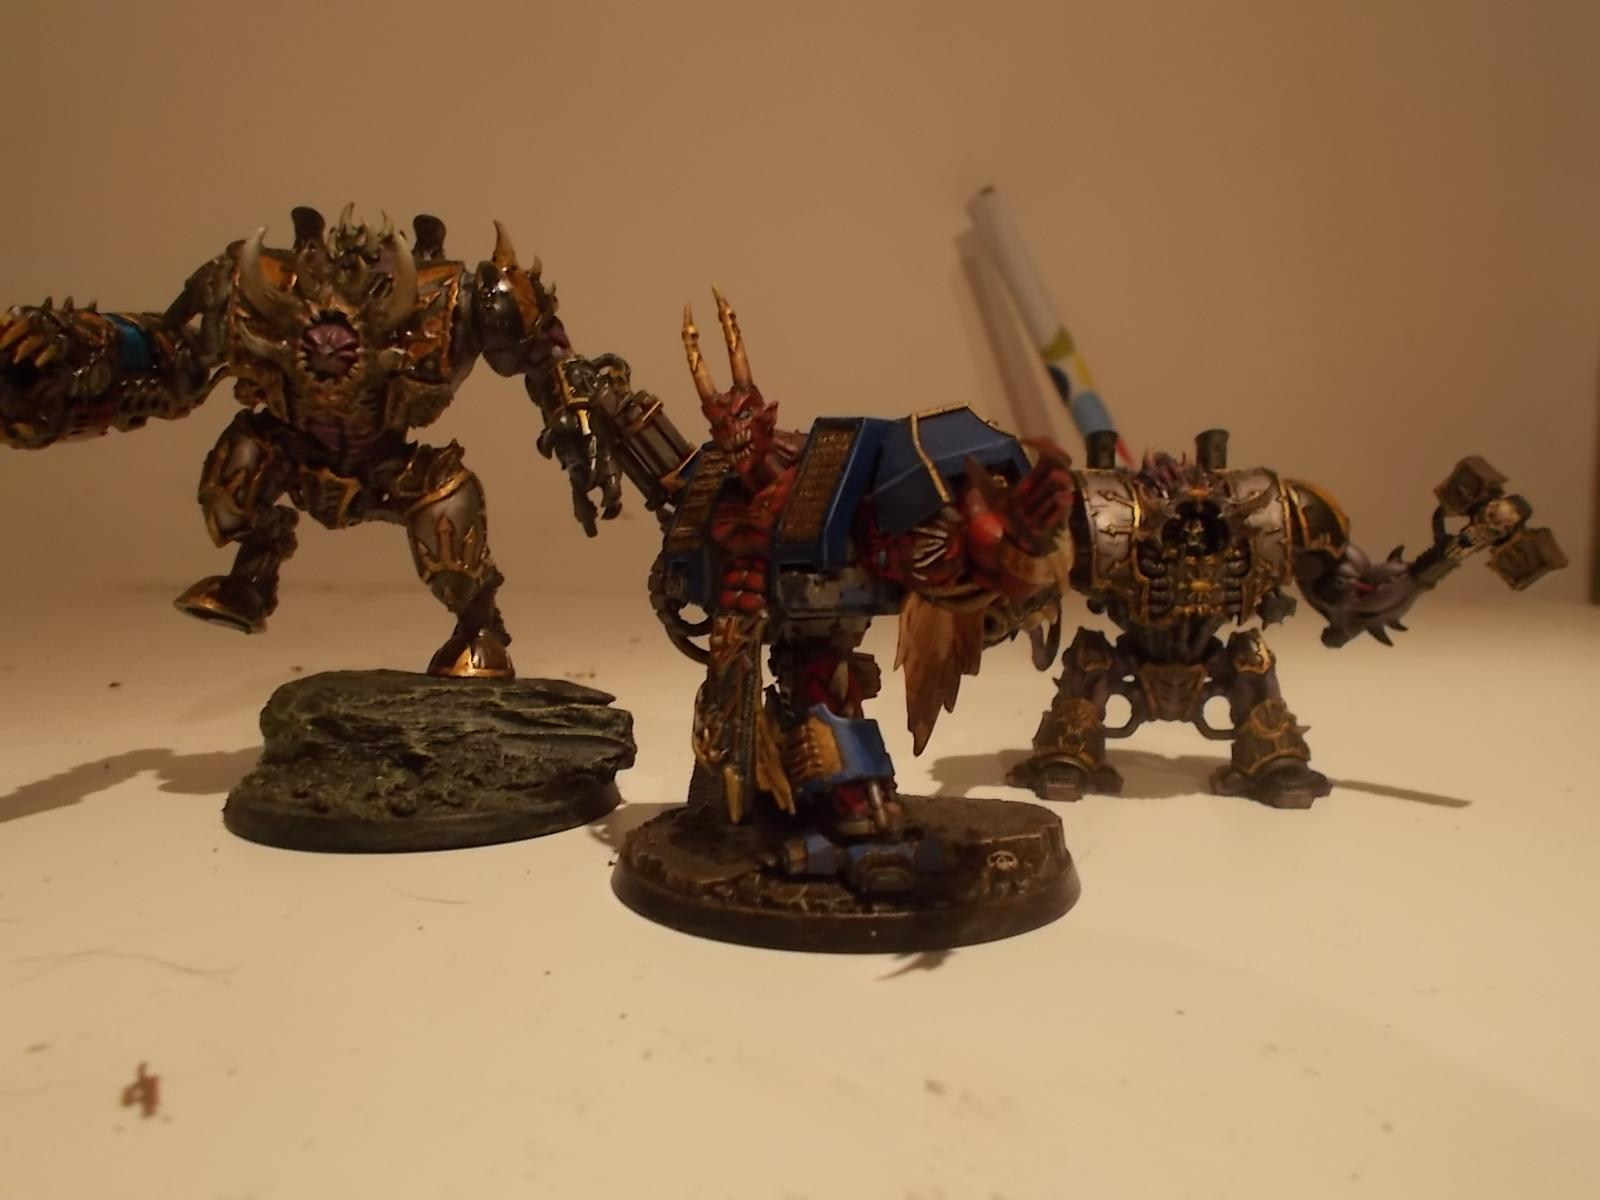 helbrute group shot, with m'kar